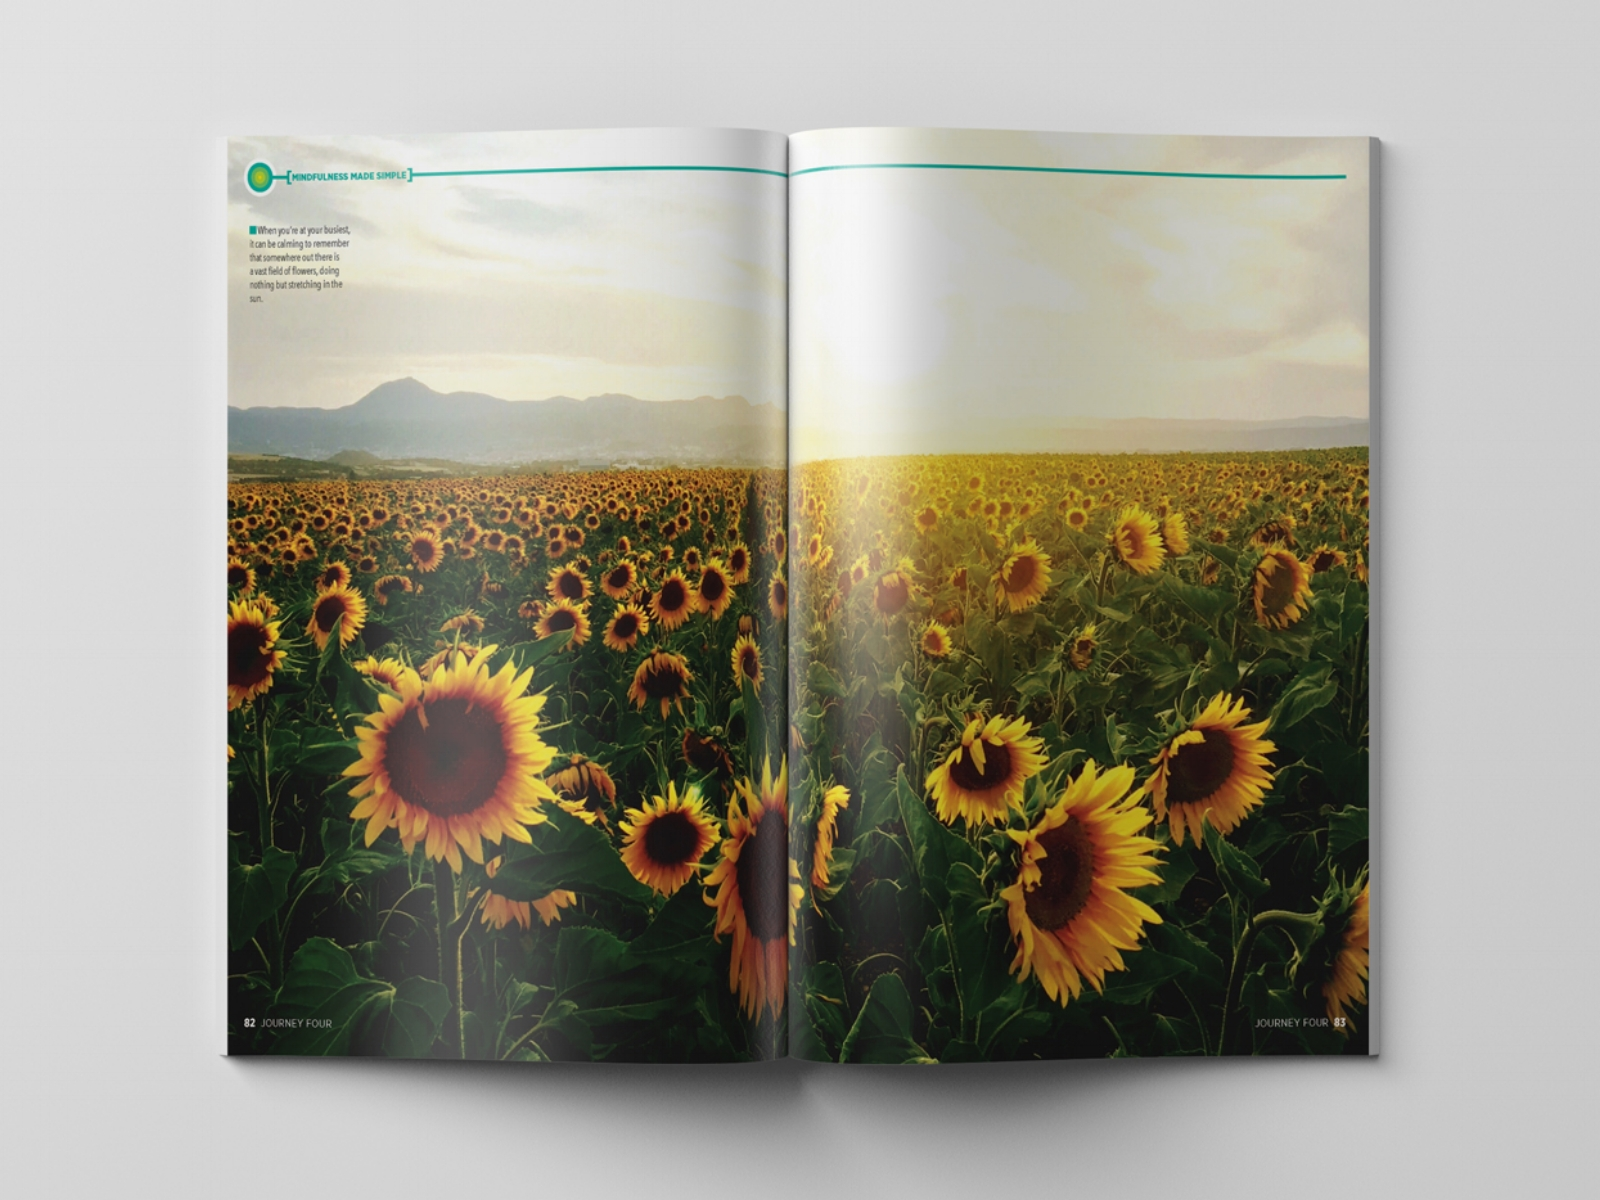 MINDF-Sunflowers-(44).jpg